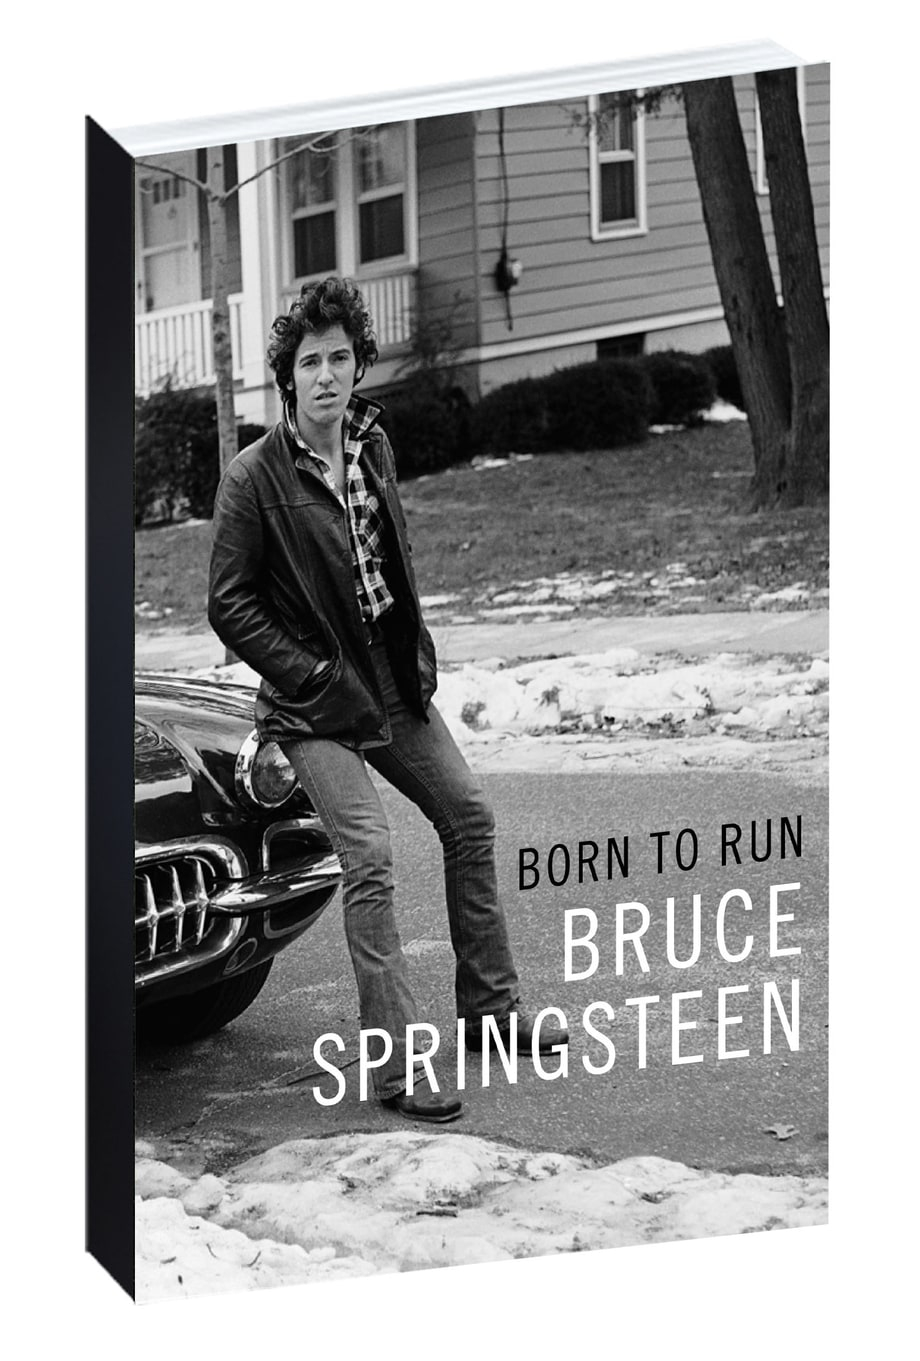 'Born to Run,' by Bruce Springsteen